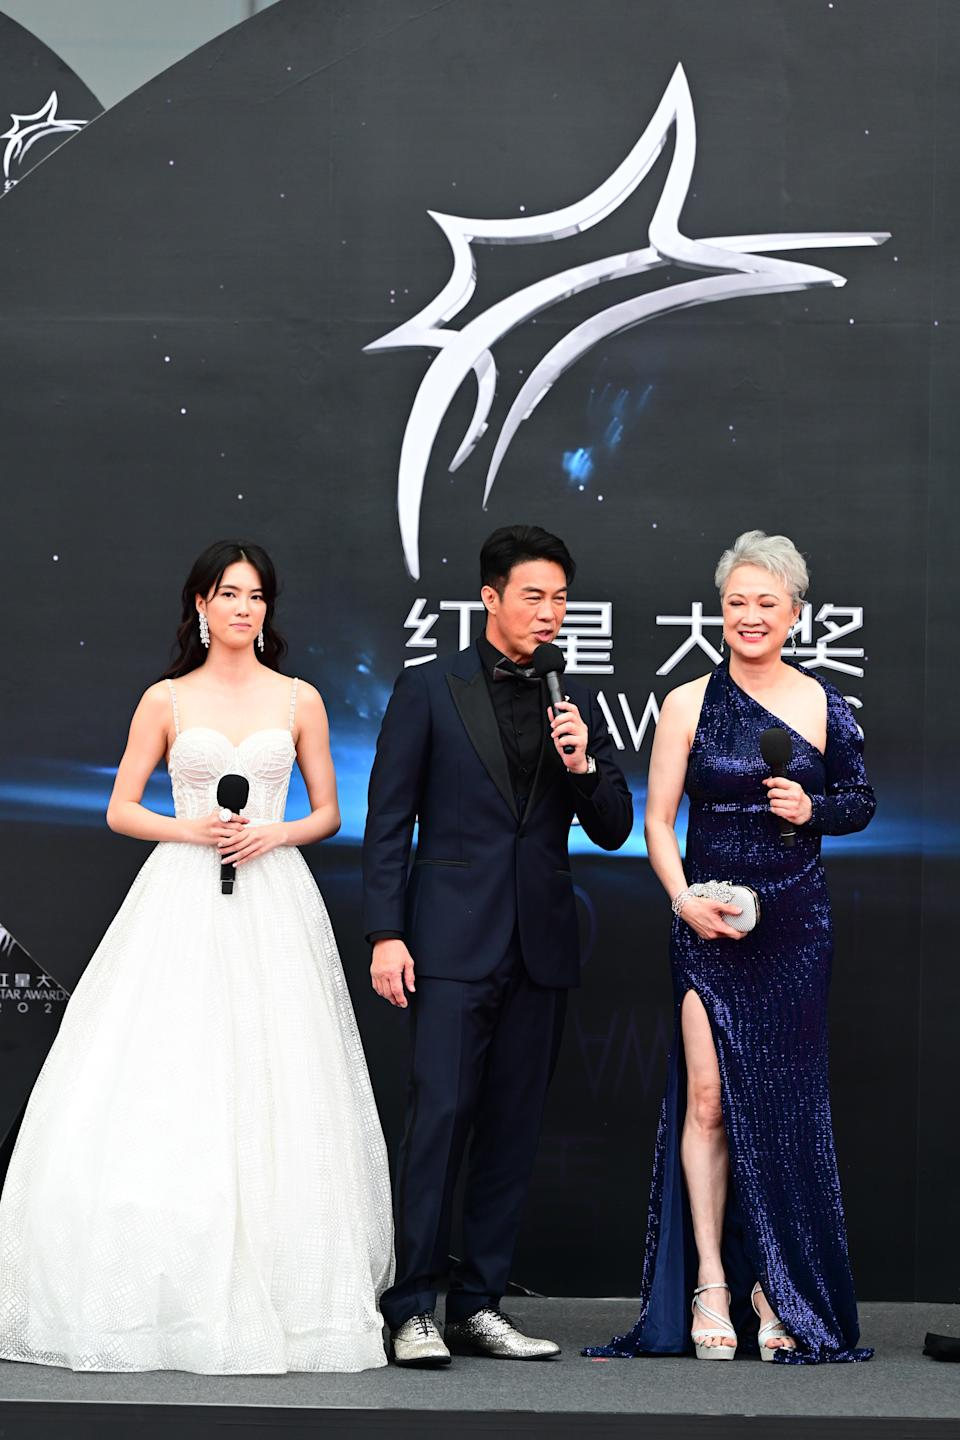 Tay Ying and her parents, Zheng Ge Ping and Hong Hui Fang, at Star Awards held at Changi Airport on 18 April 2021. (Photo: Mediacorp)